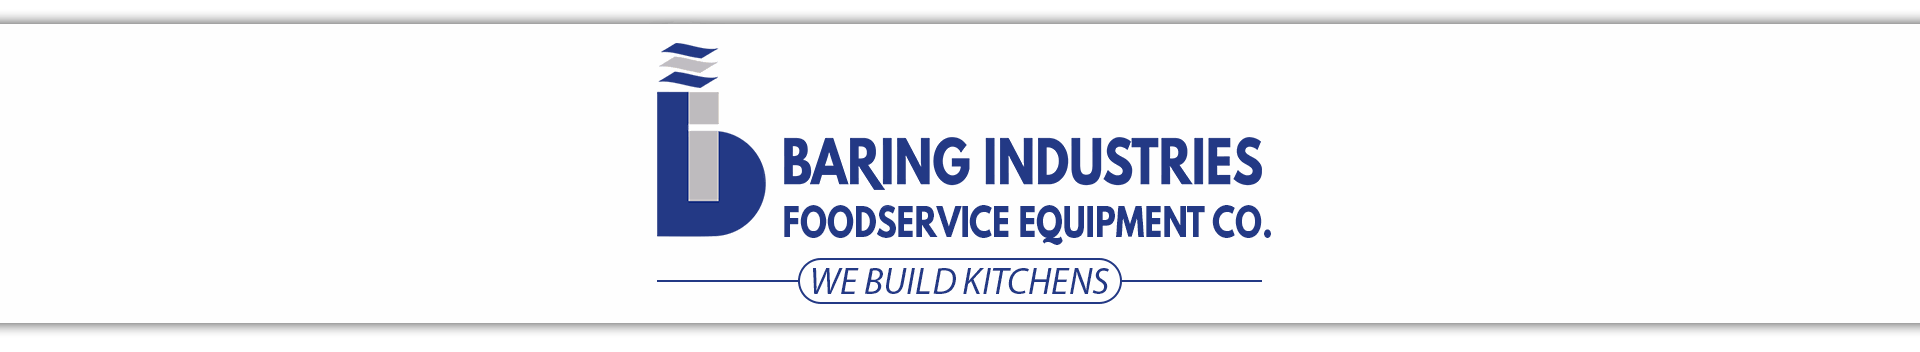 Baring Industries Foodservice Equipment Company